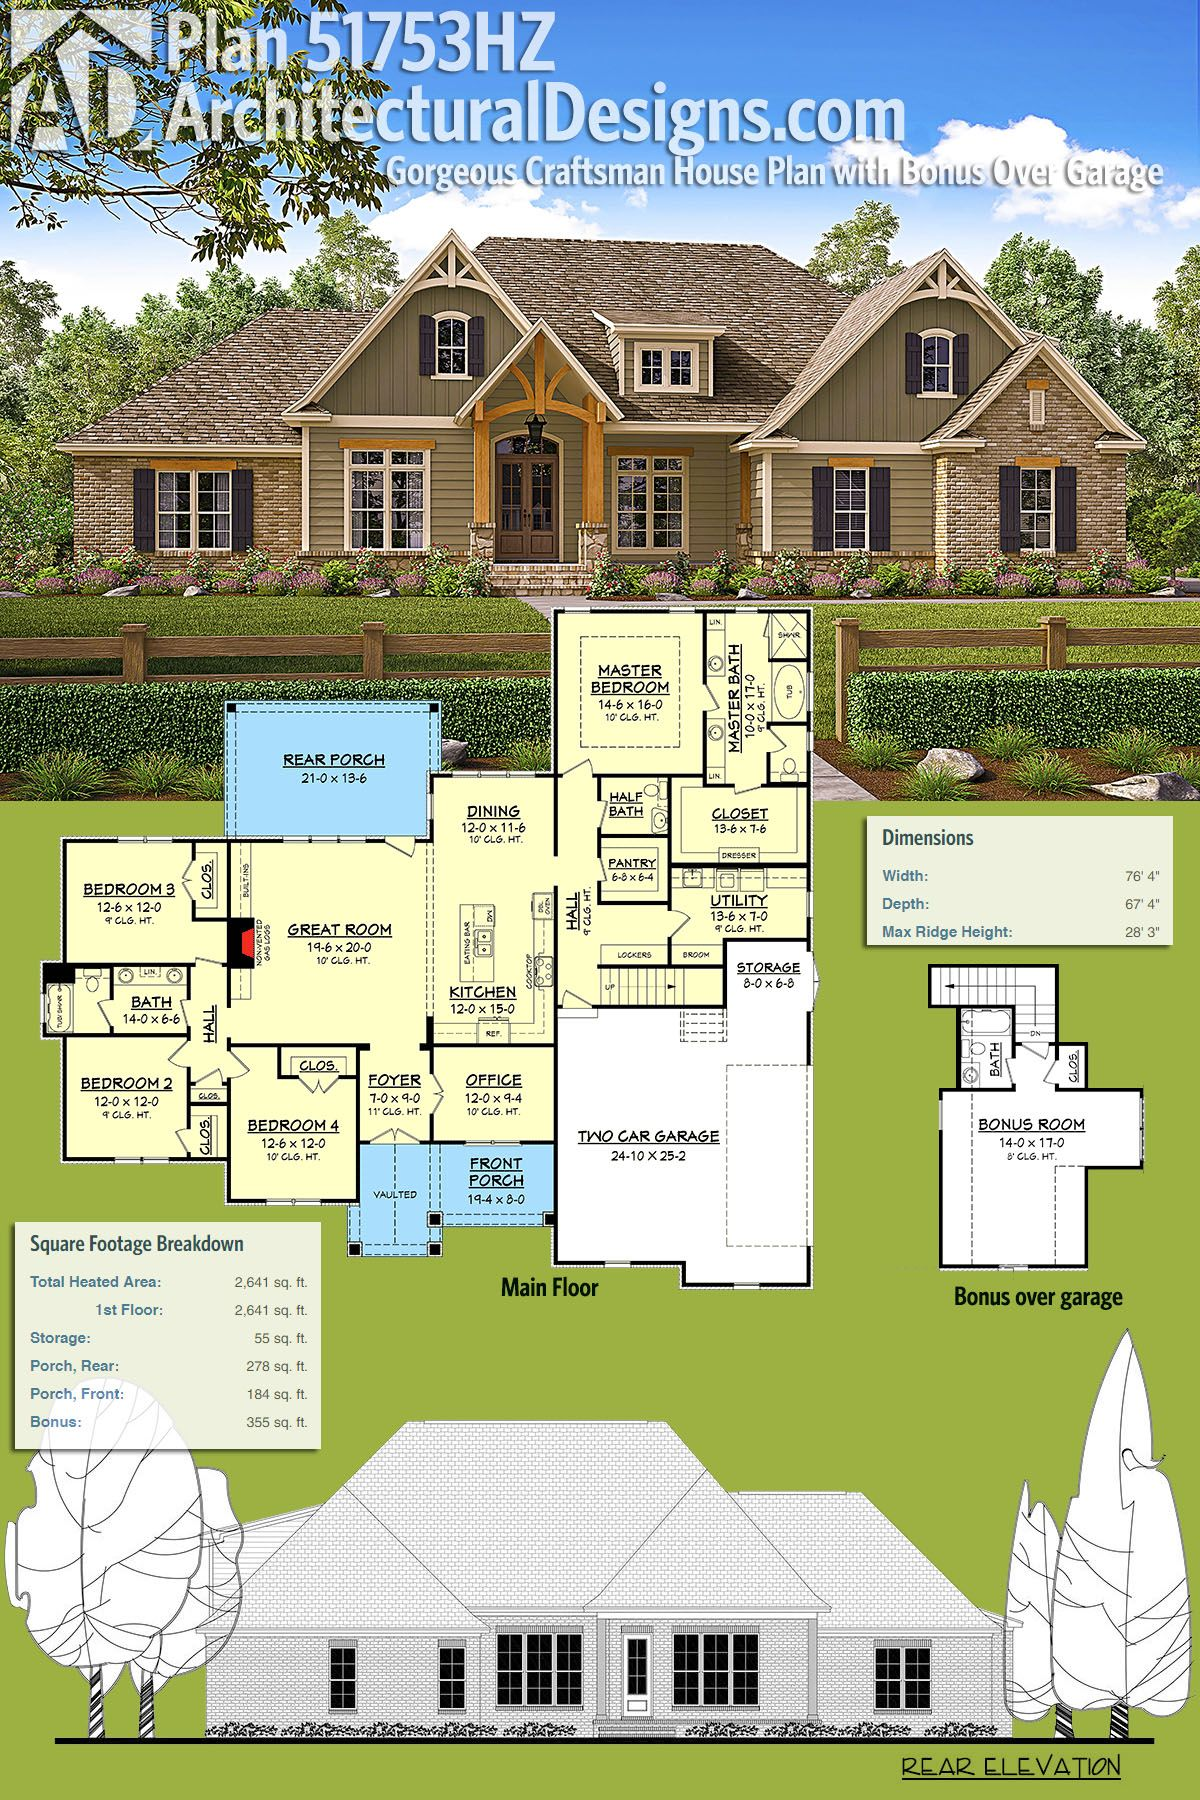 Plan 51753HZ Gorgeous Craftsman House Plan with